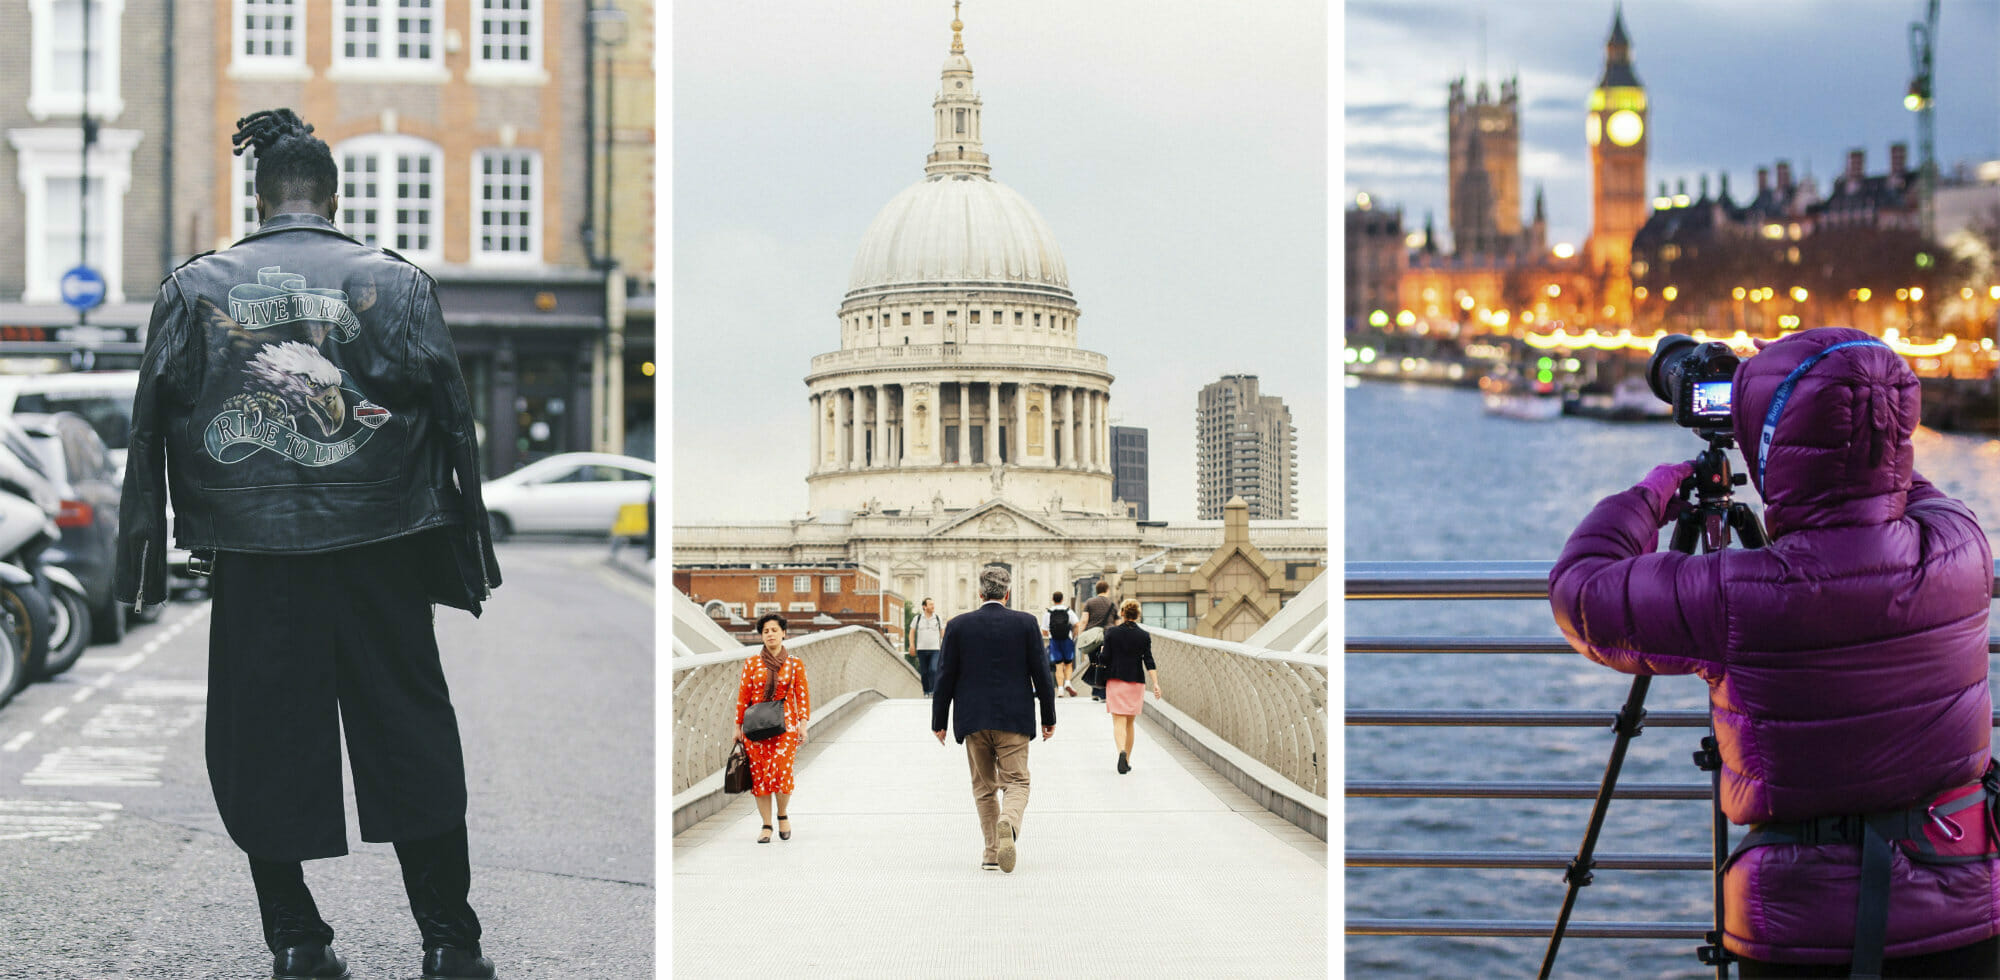 35+ Things to Do Alone in London for the Ultimate Solo Trip via @girlsgonelondon